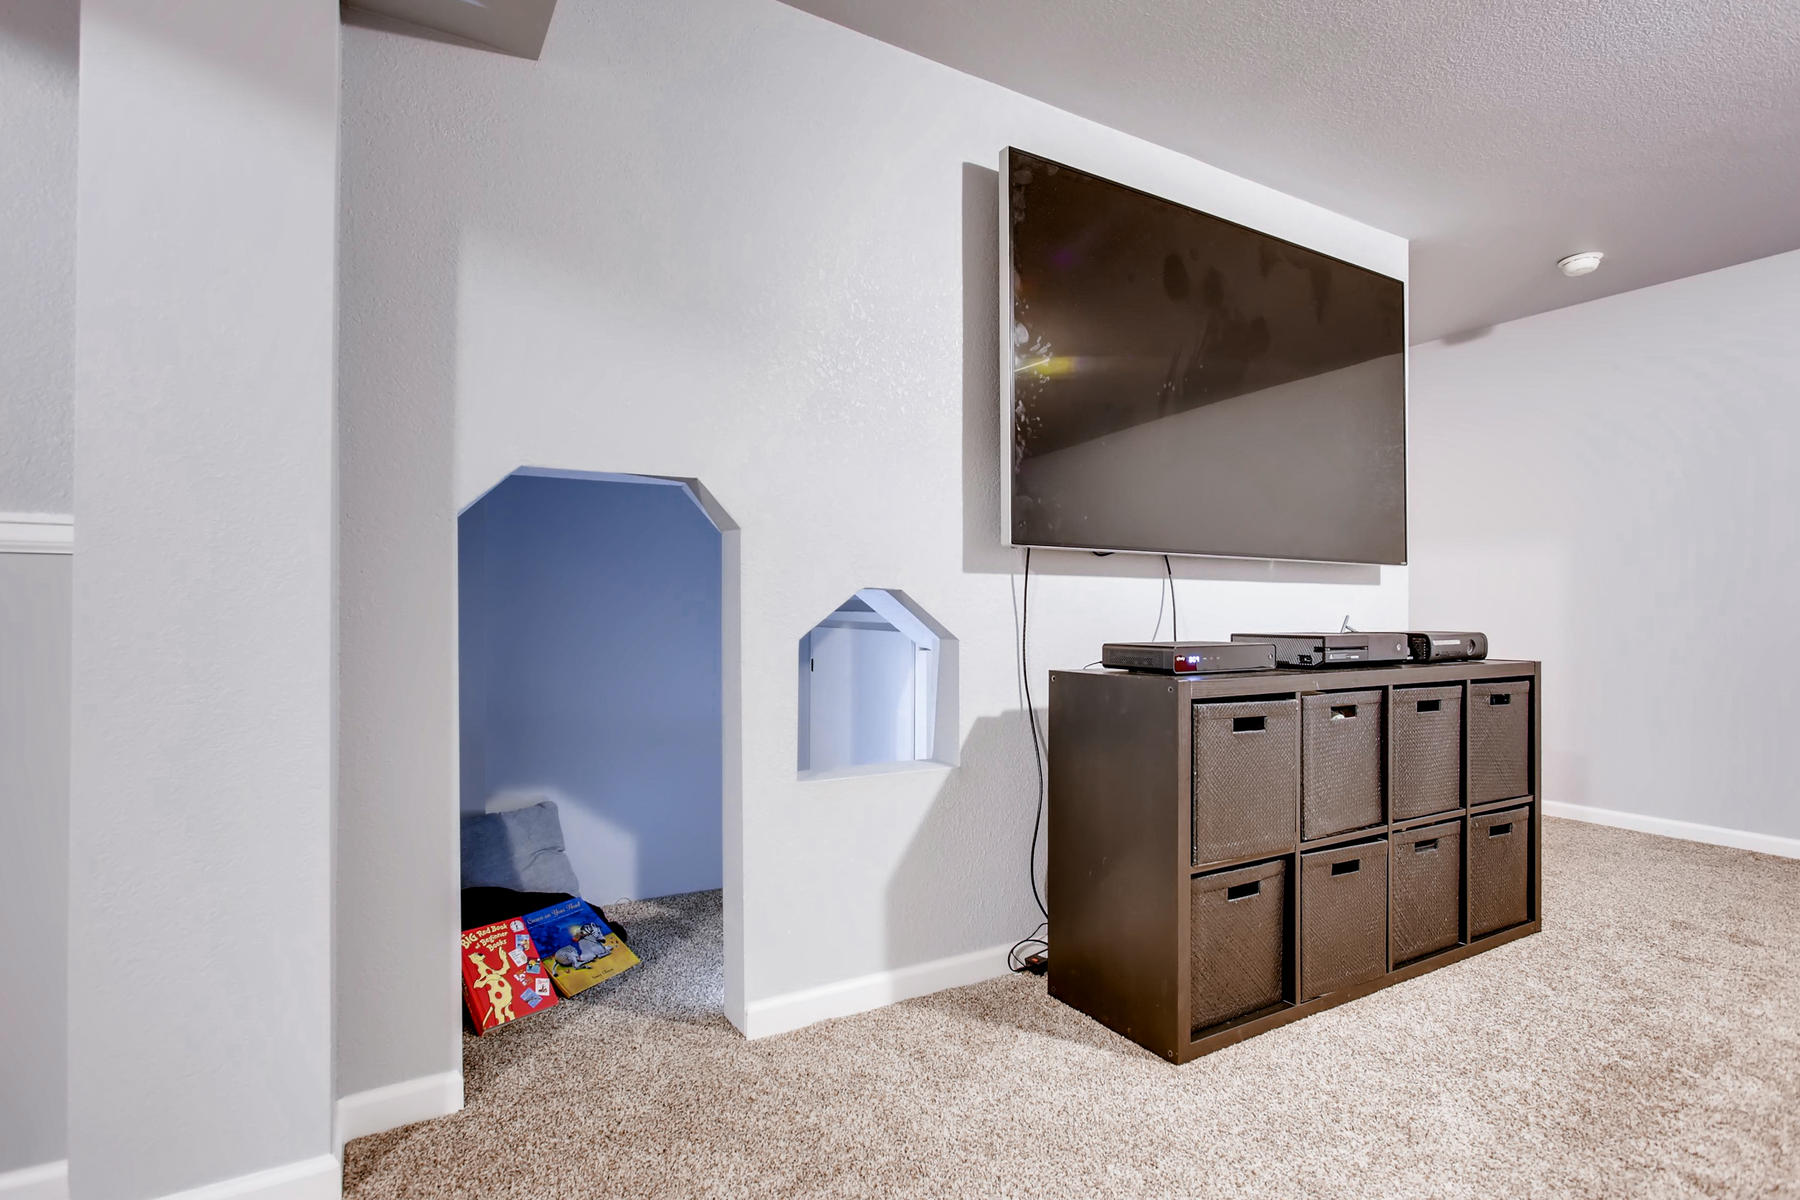 Under-Case Play Area!